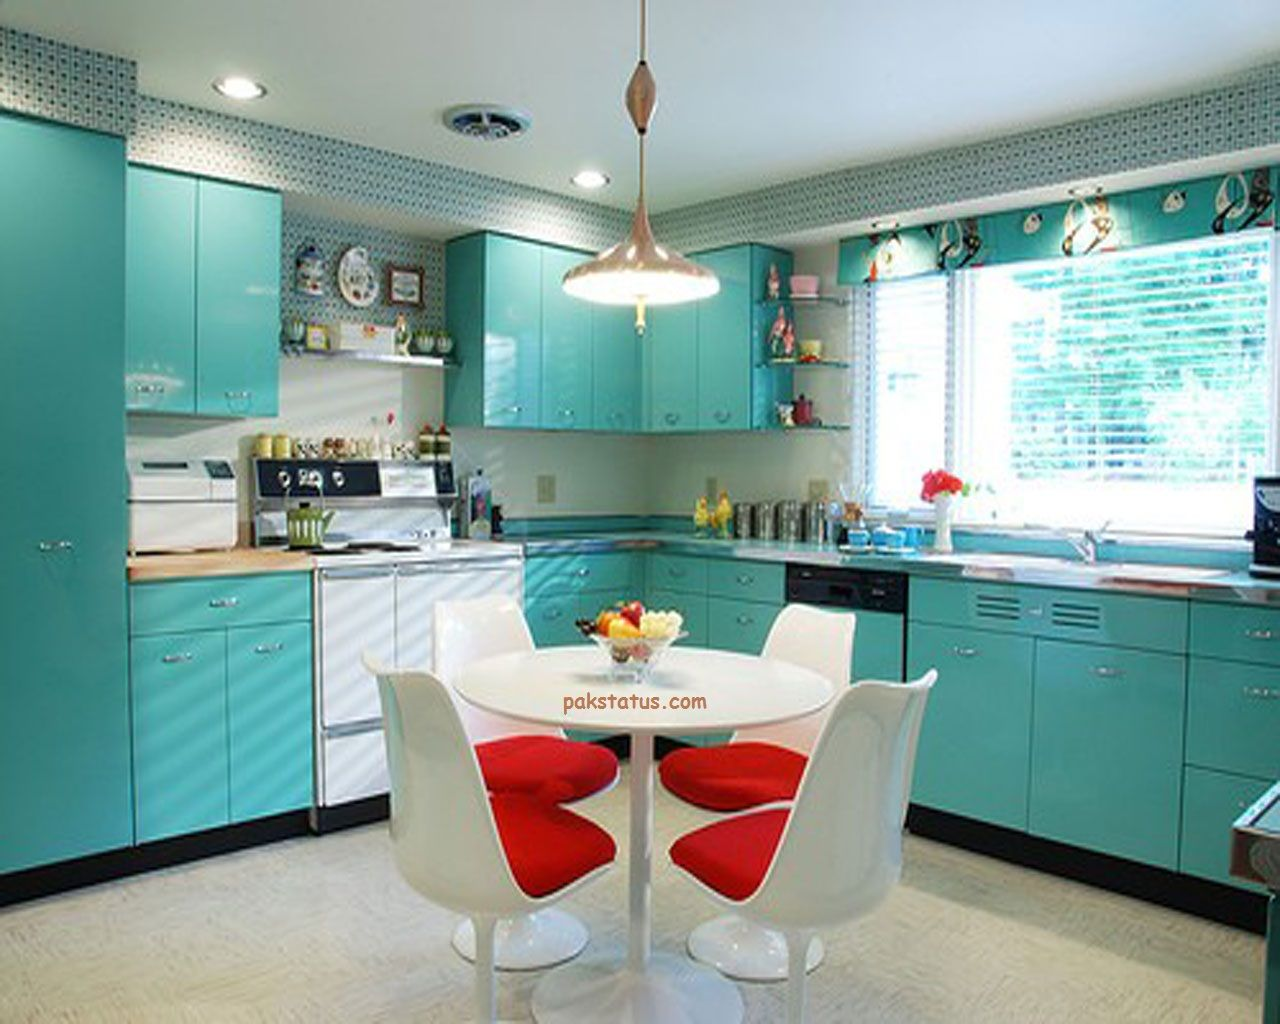 20 Gorgeous Kitchen Cabinet Design Ideas | Cabinet design, Turquoise ...